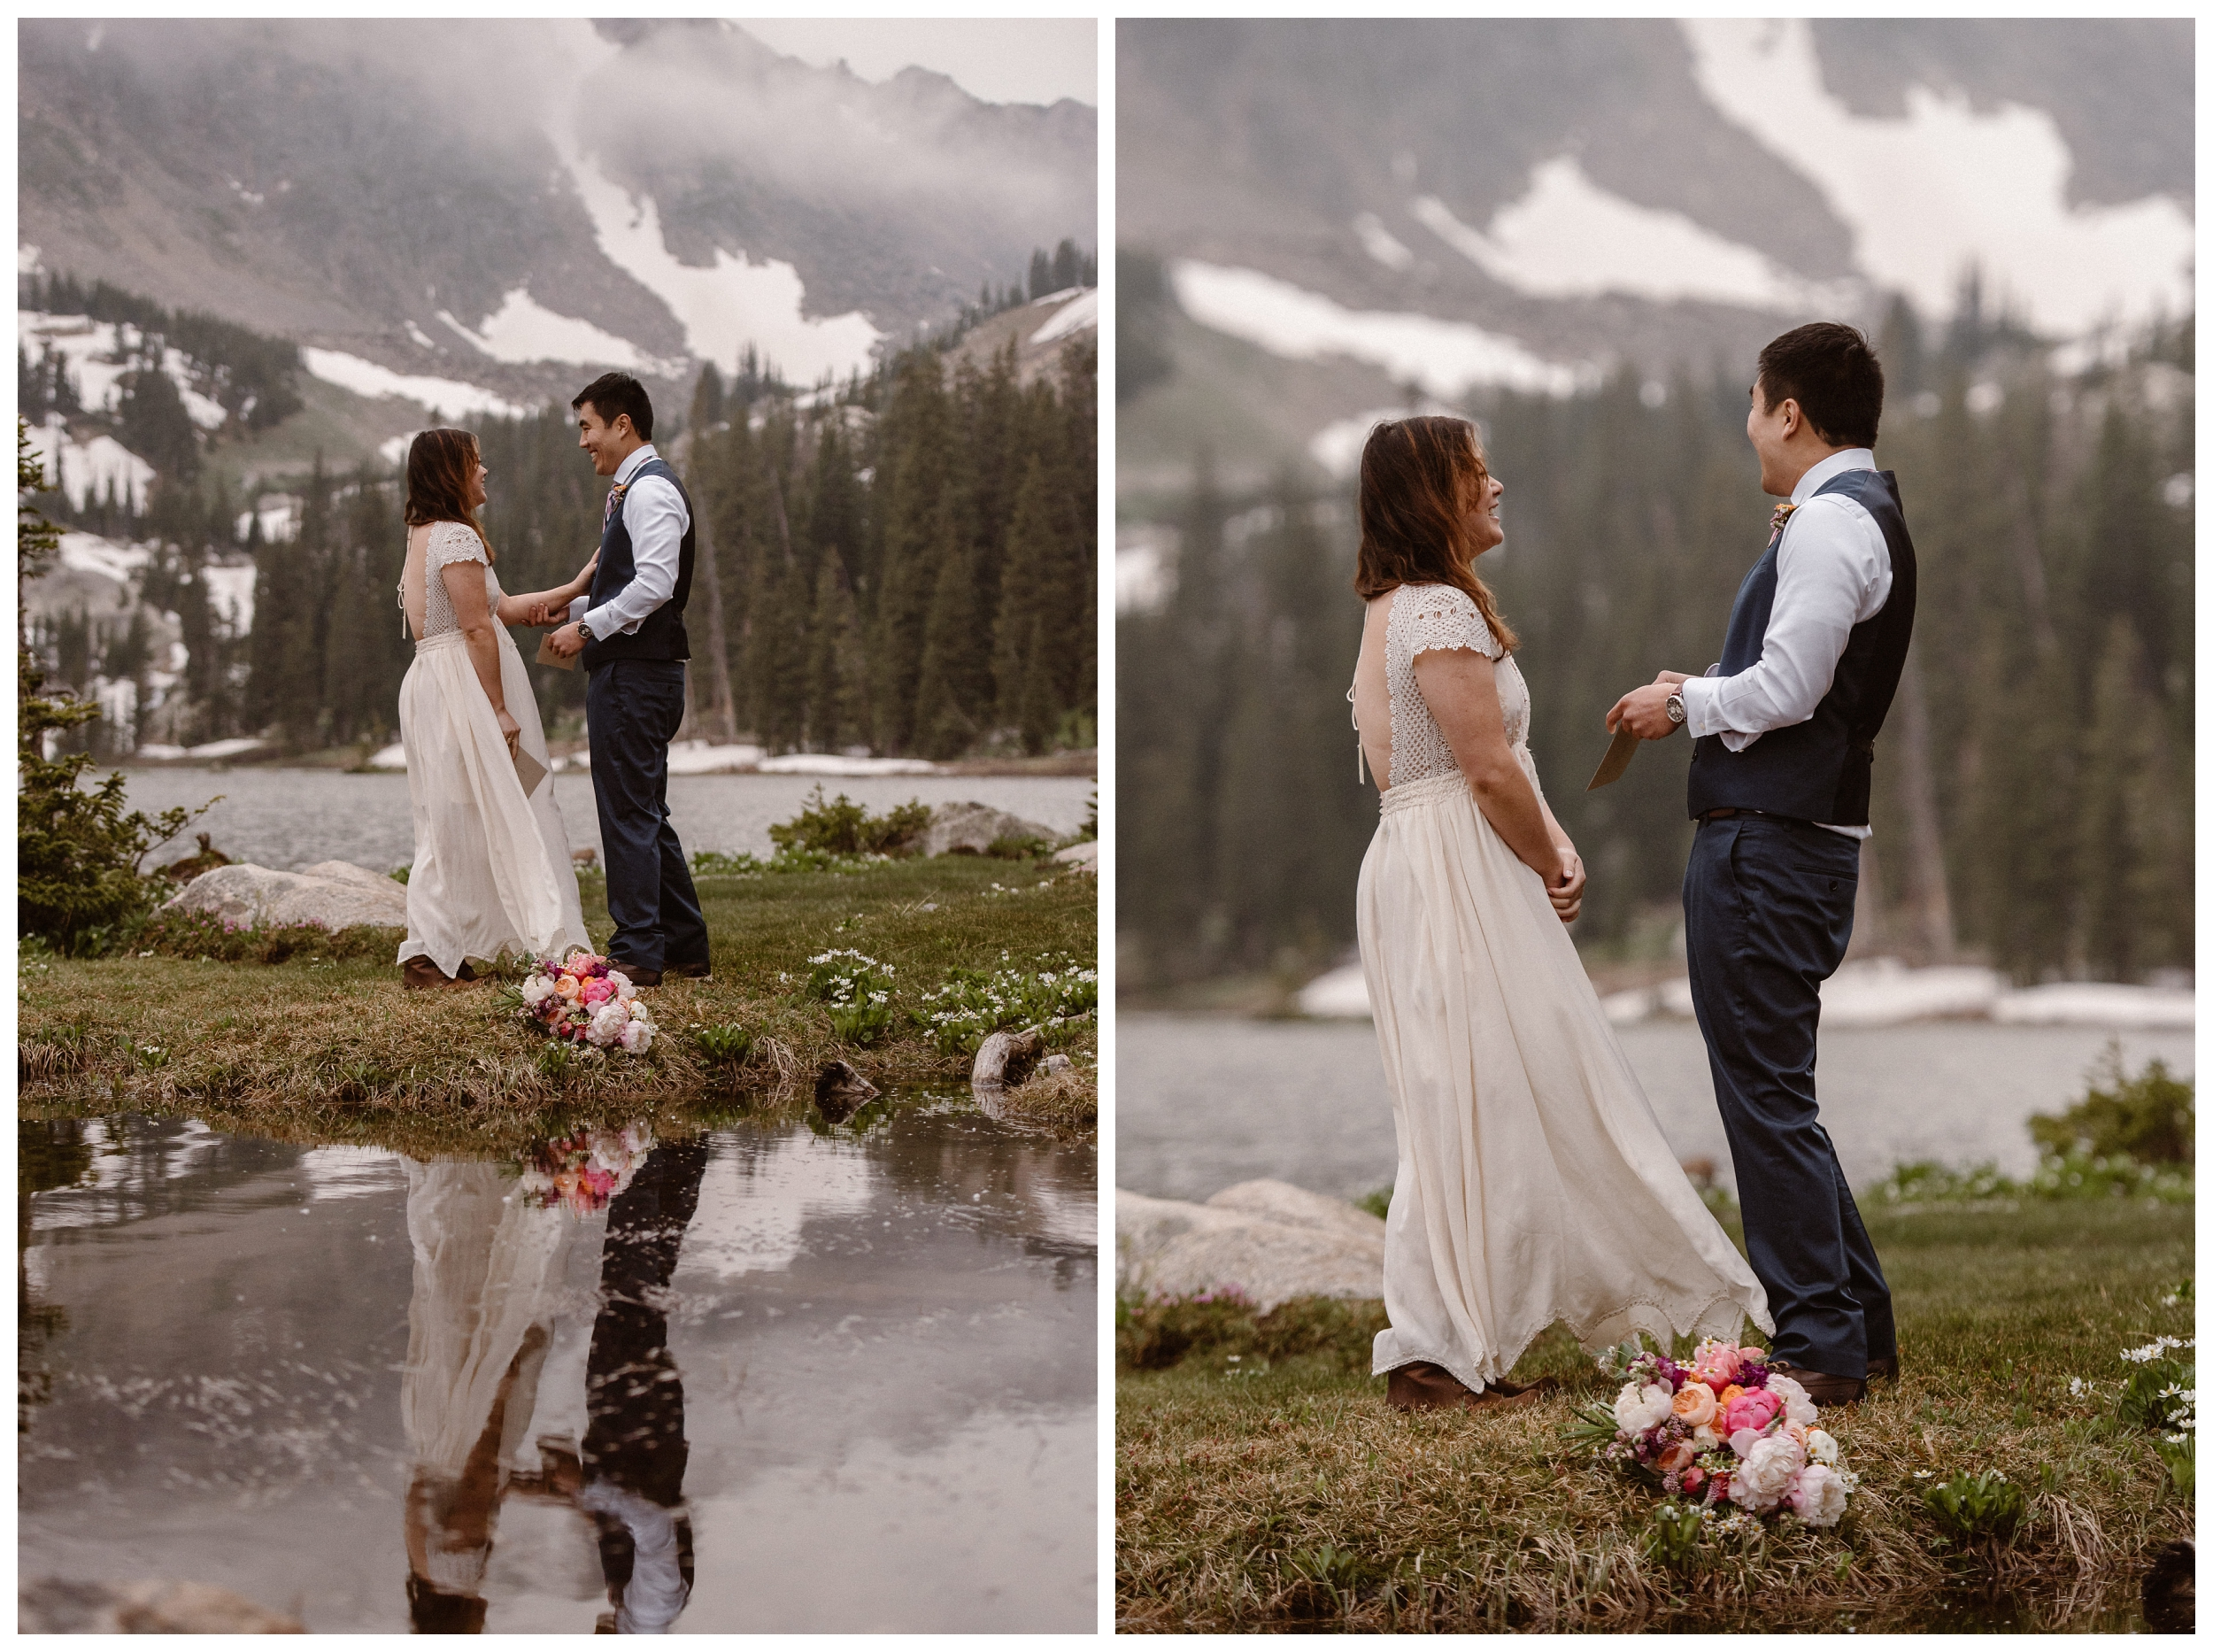 Leslie and Jinson exchange vows on the shores of Gem Lake as clouds roll around the mountains behind them. Photo by Maddie Mae Photo, Adventure Instead.